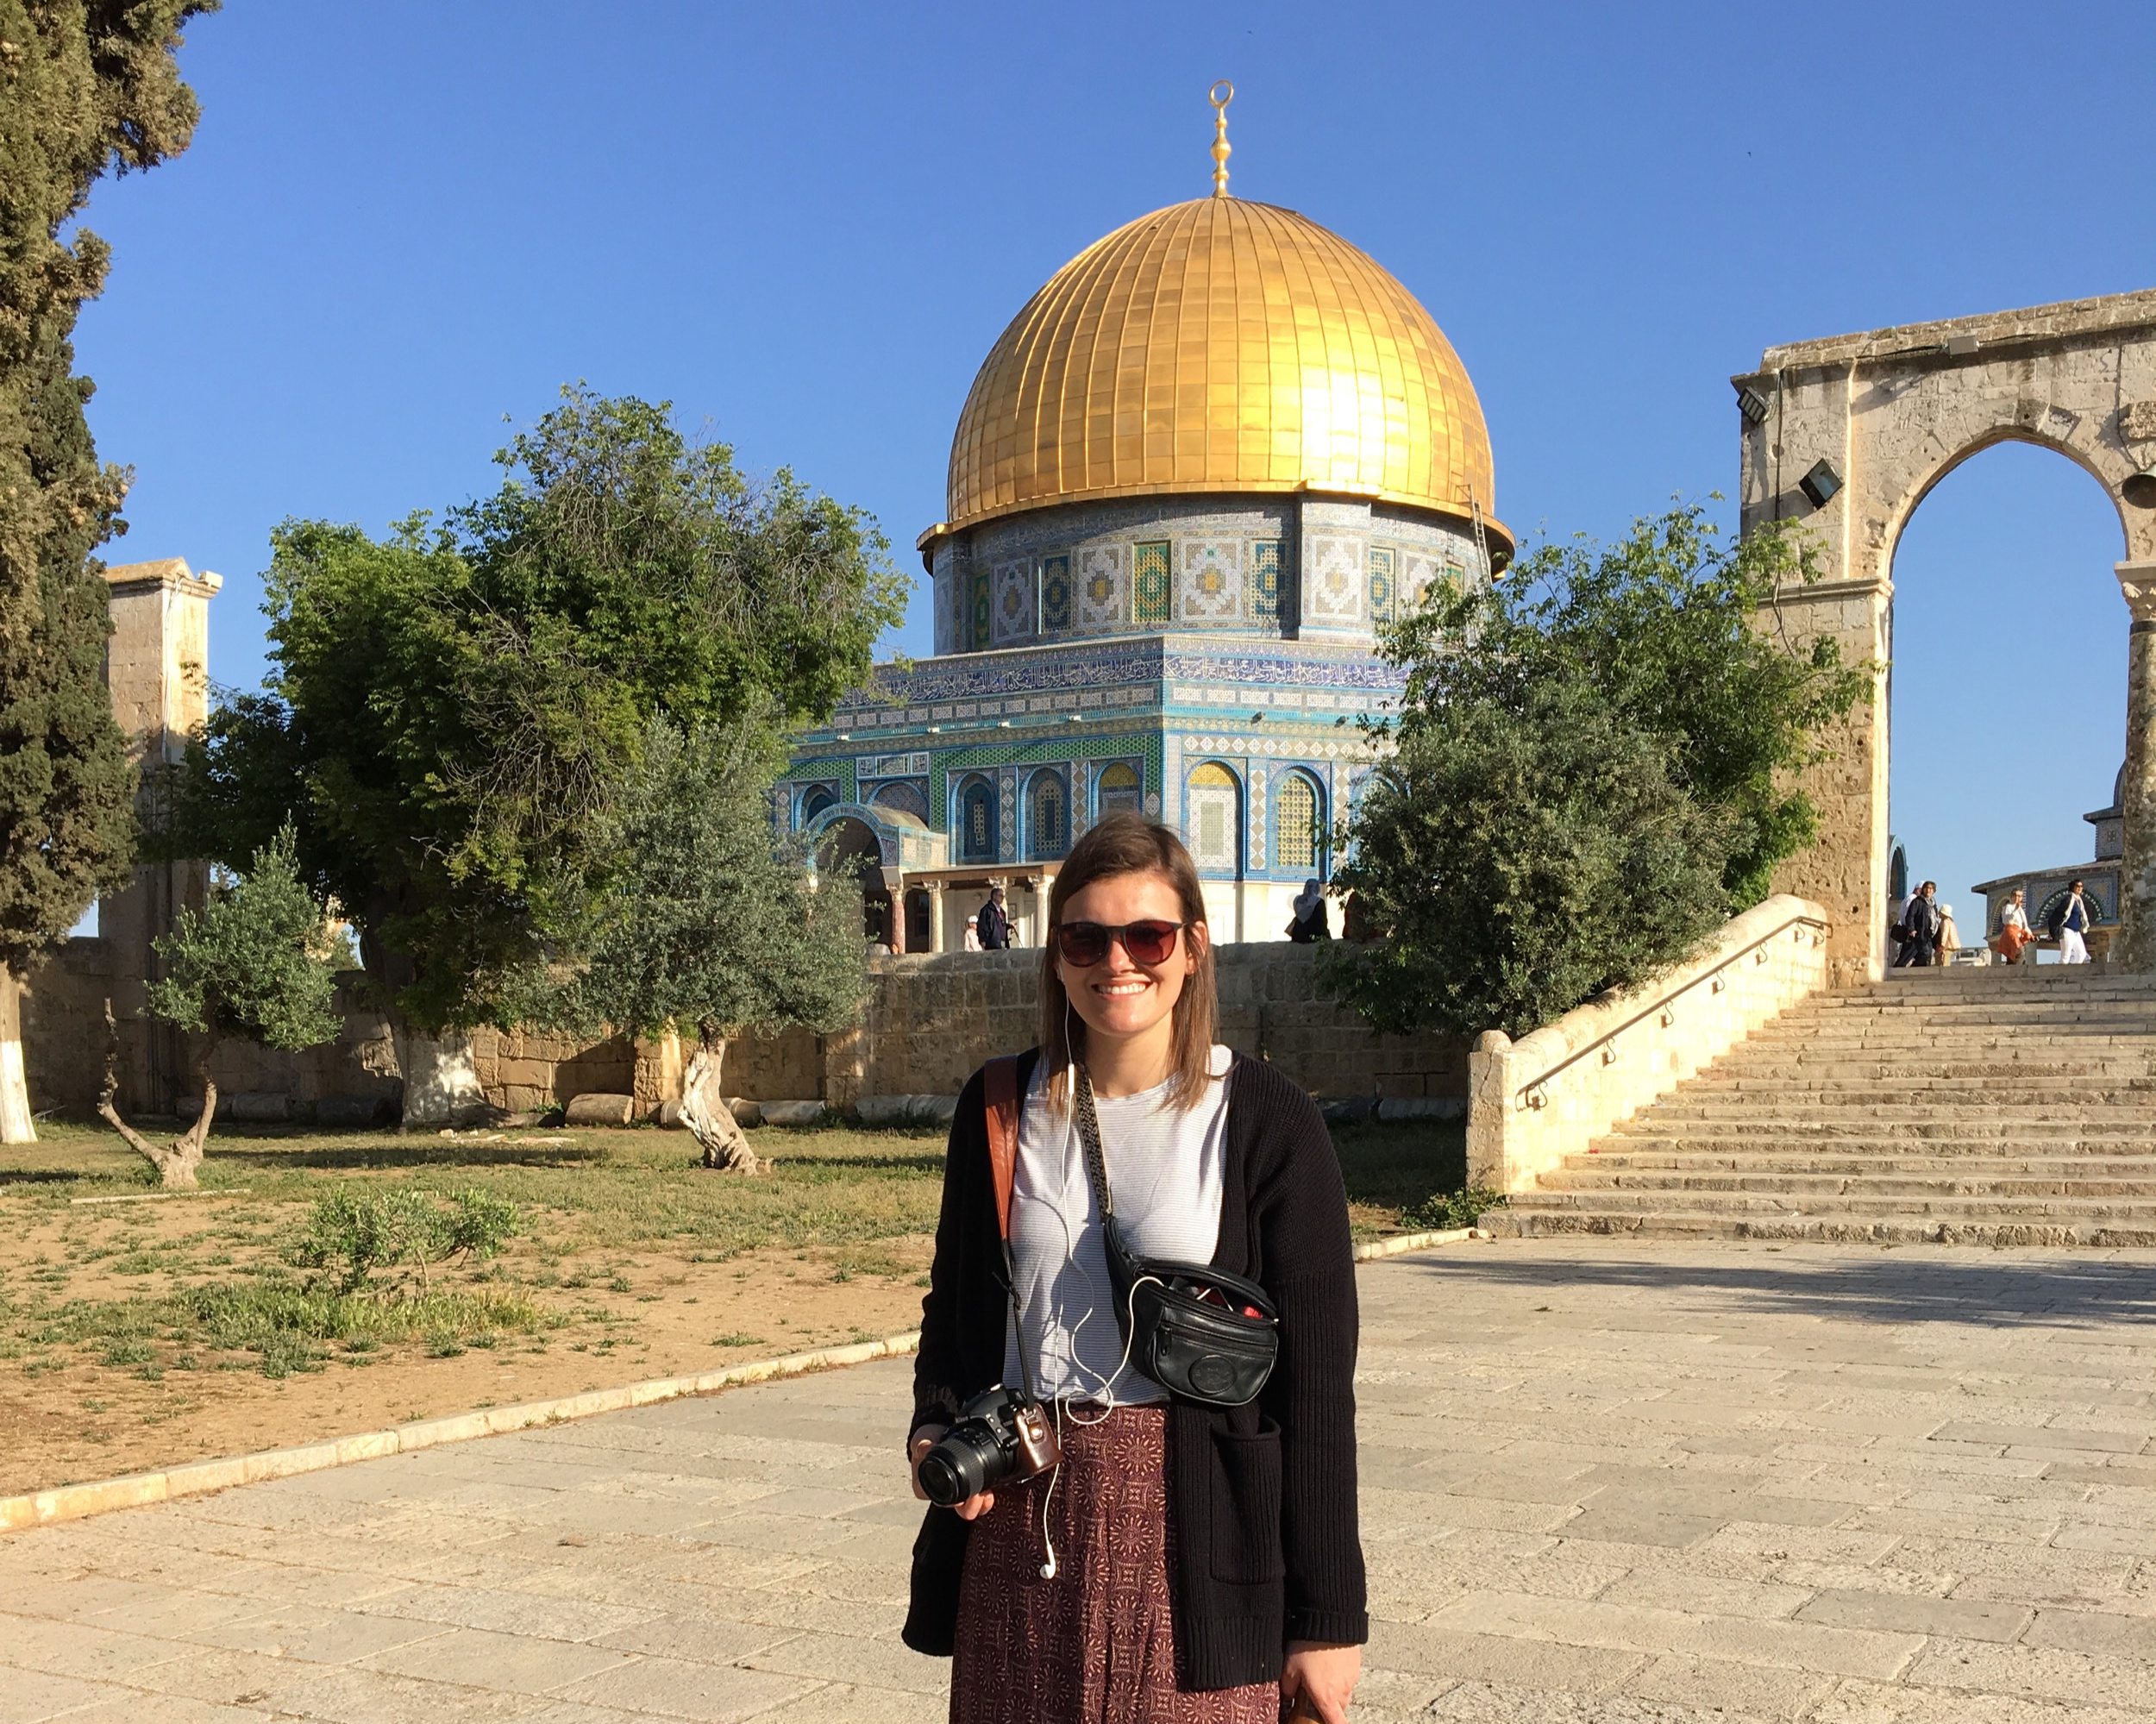 At the Temple Mount in Jerusalem